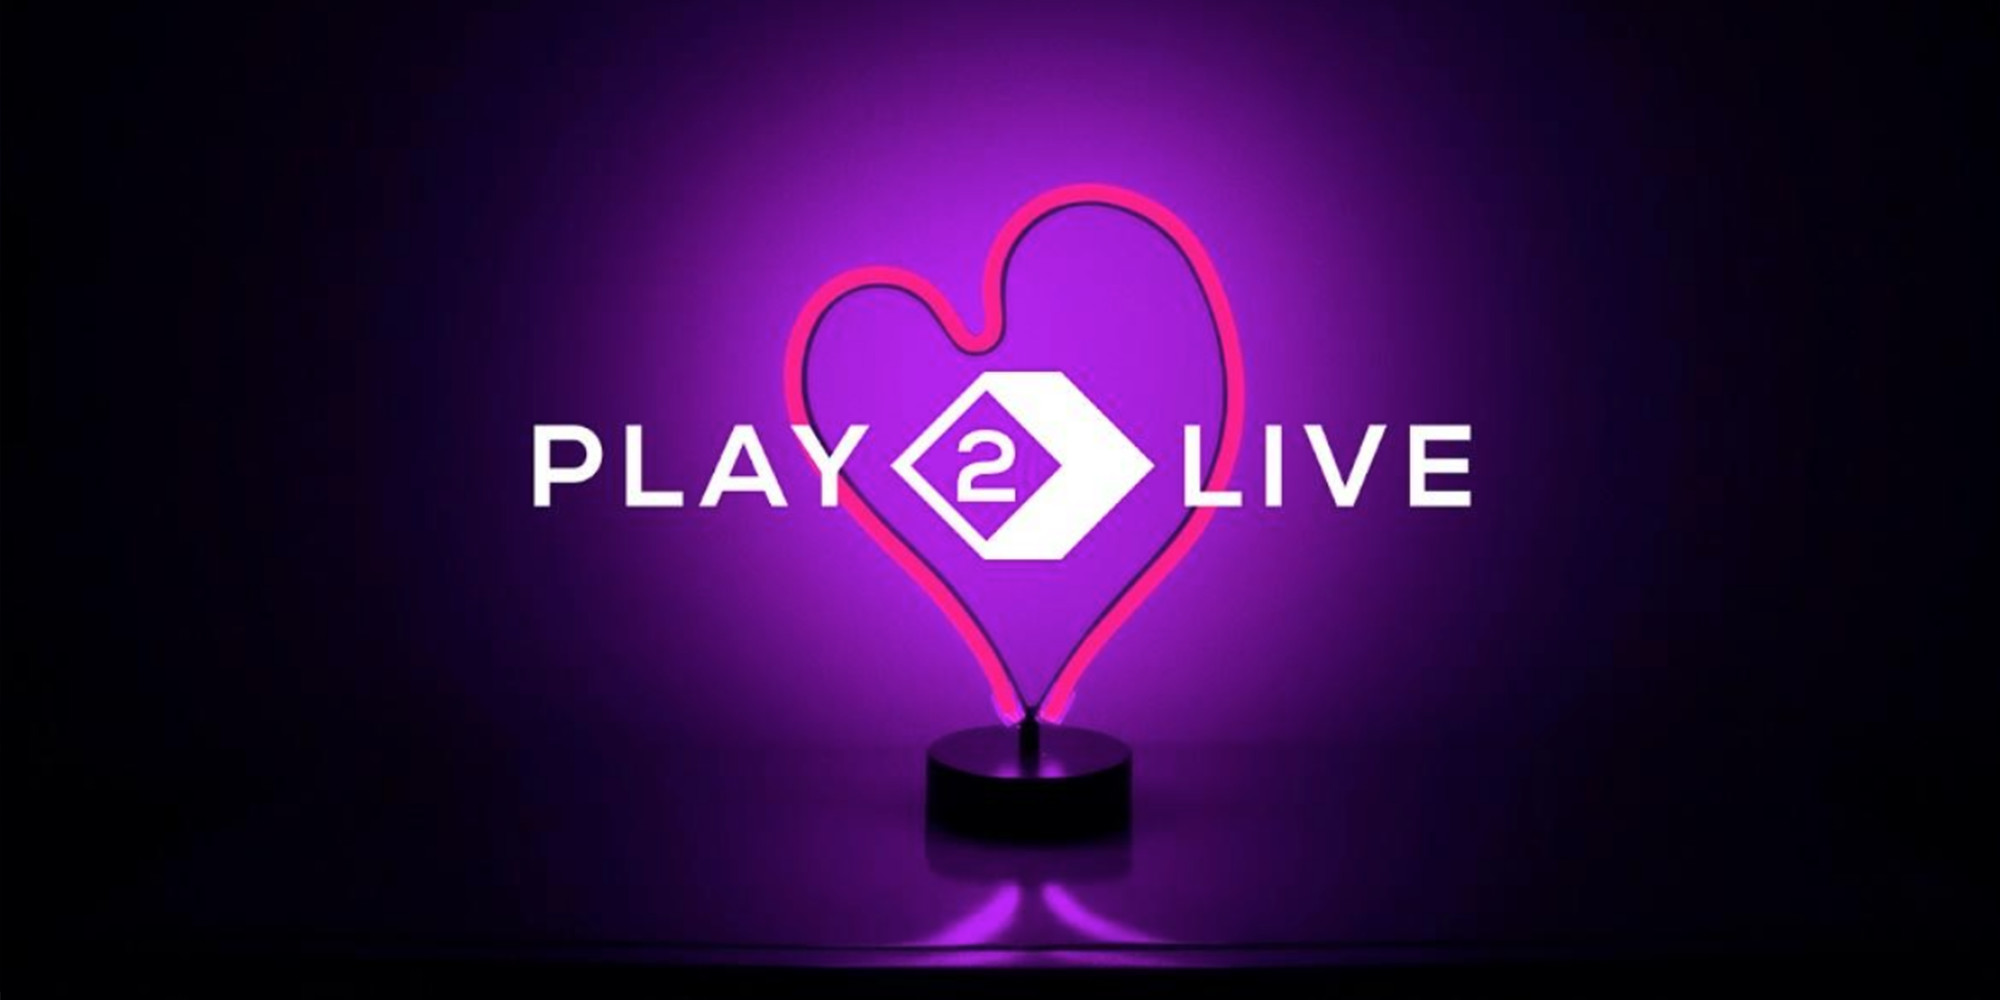 Play2Live ups the ante on stream interactivity with new task system